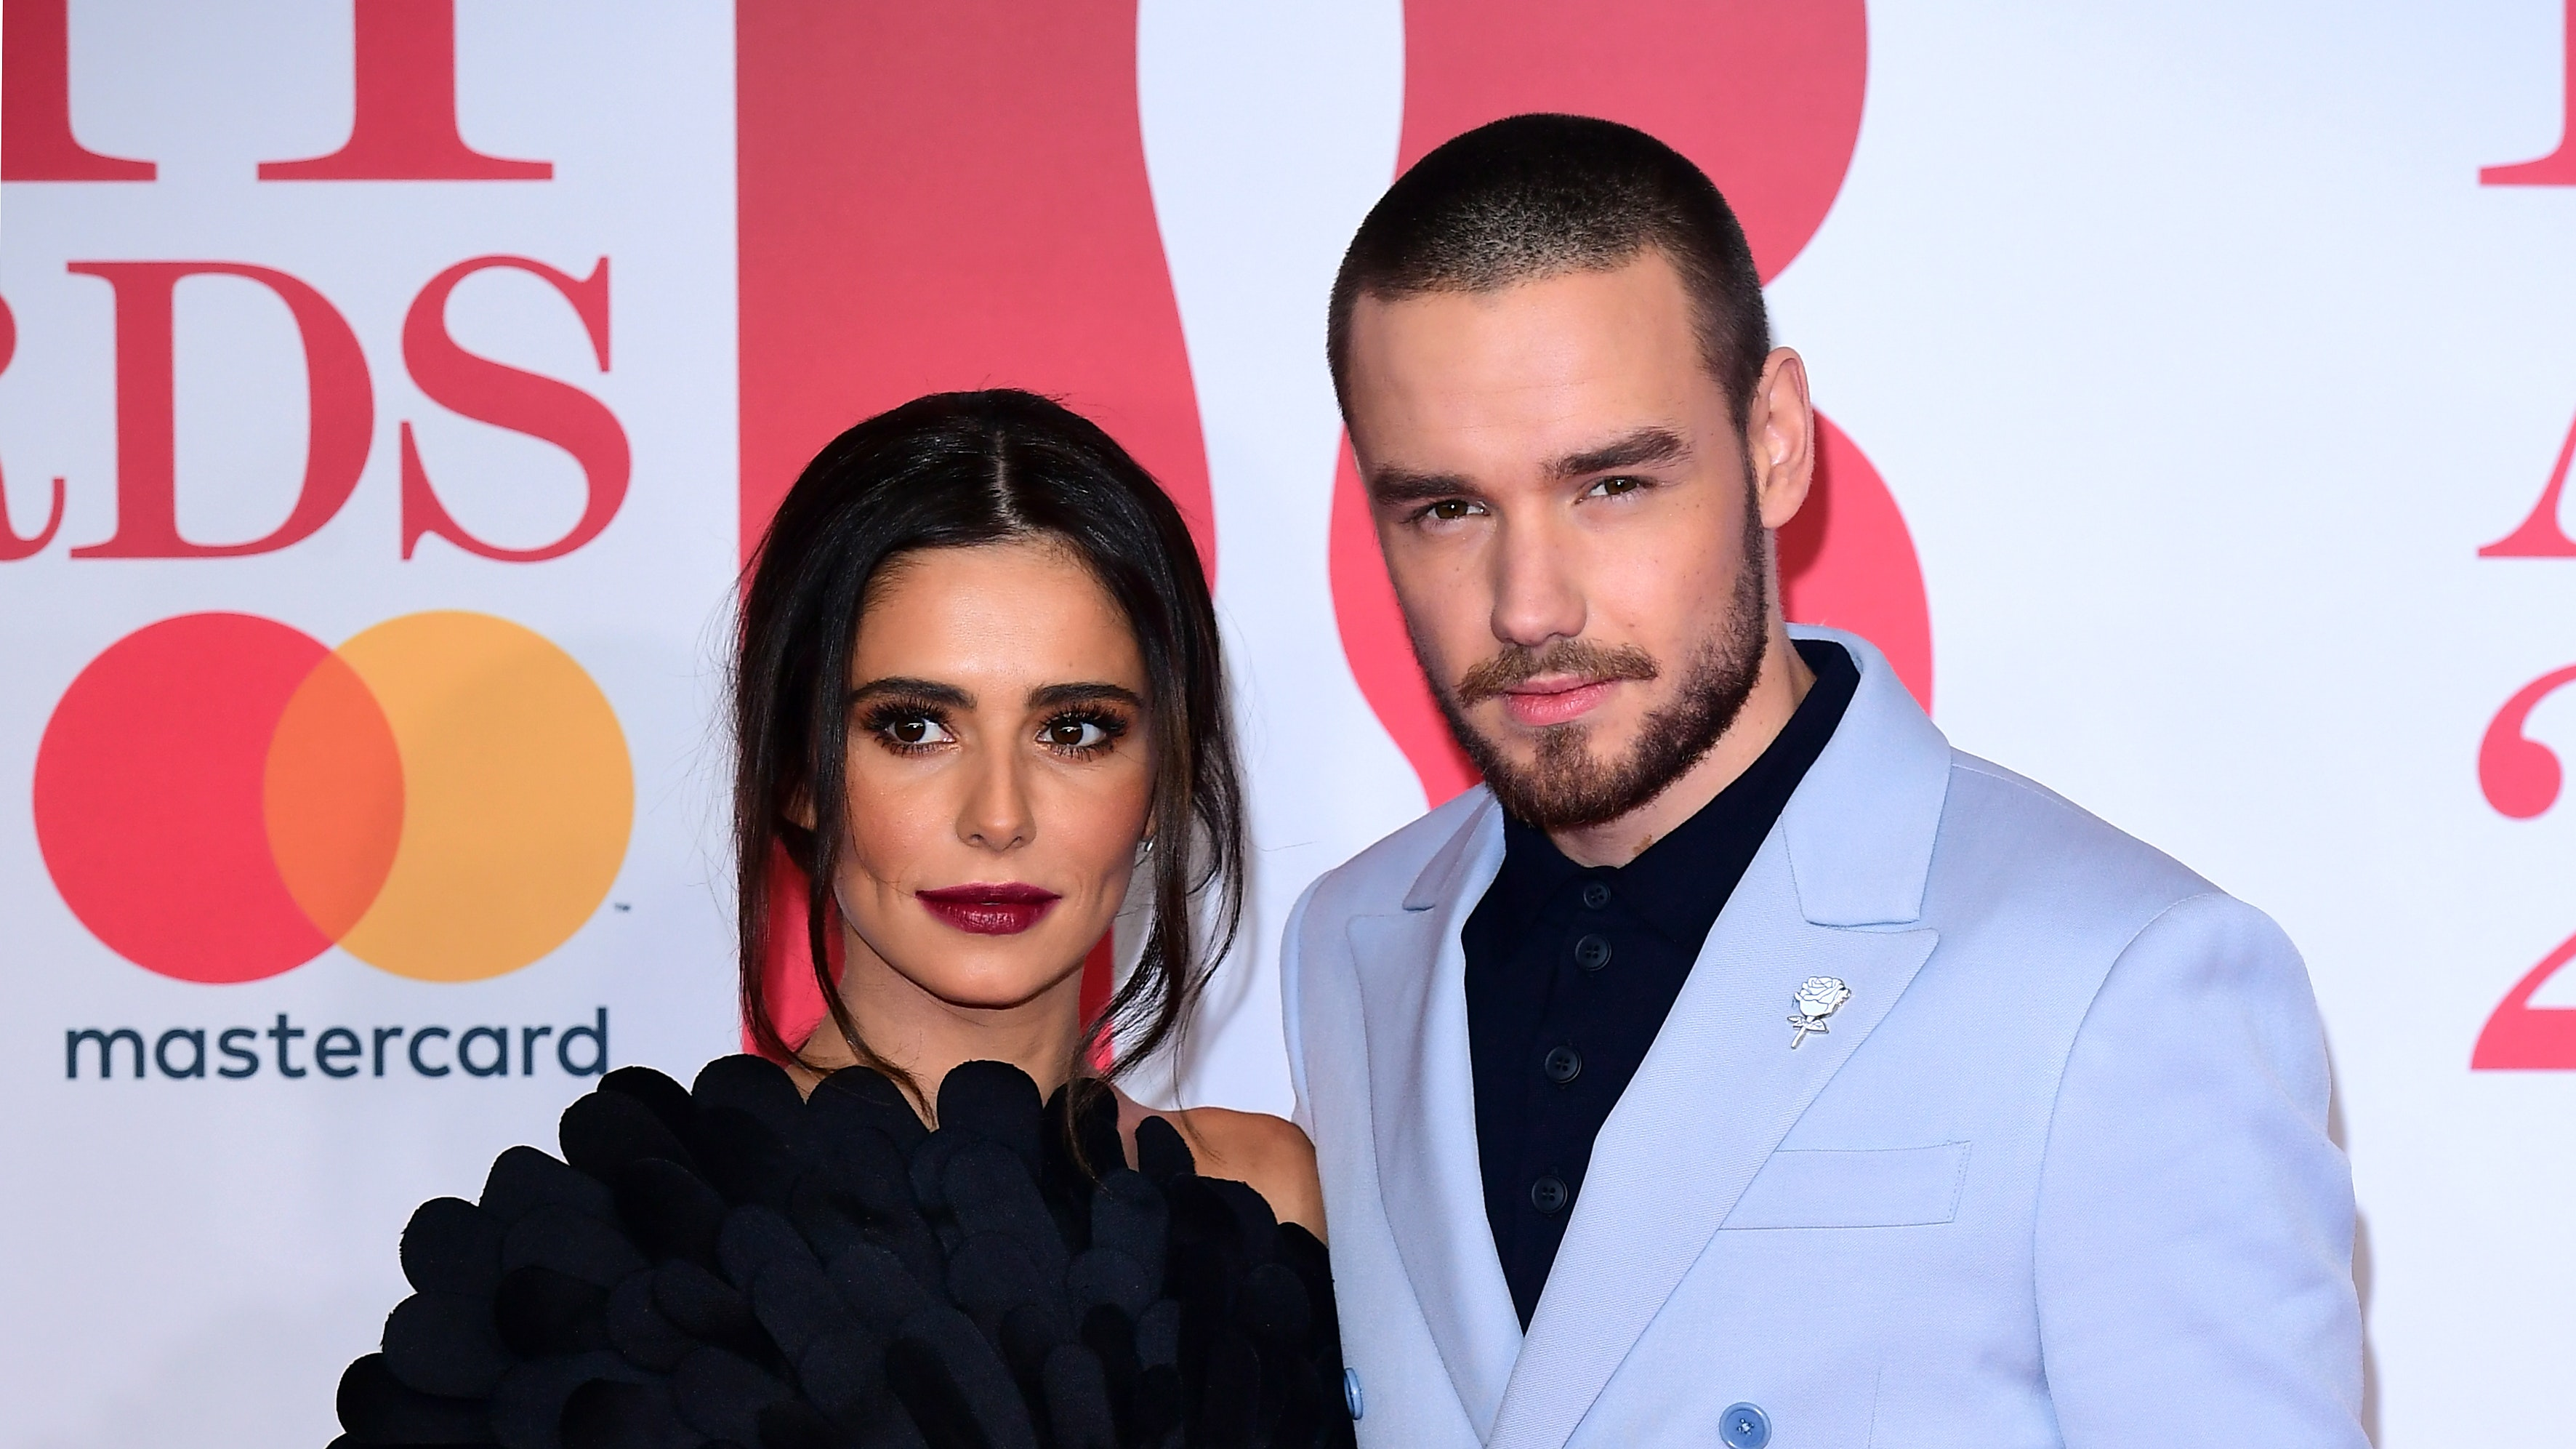 Cheryl Cole Reveals Her and Liam Payne's Sex Safe Word at BRITs